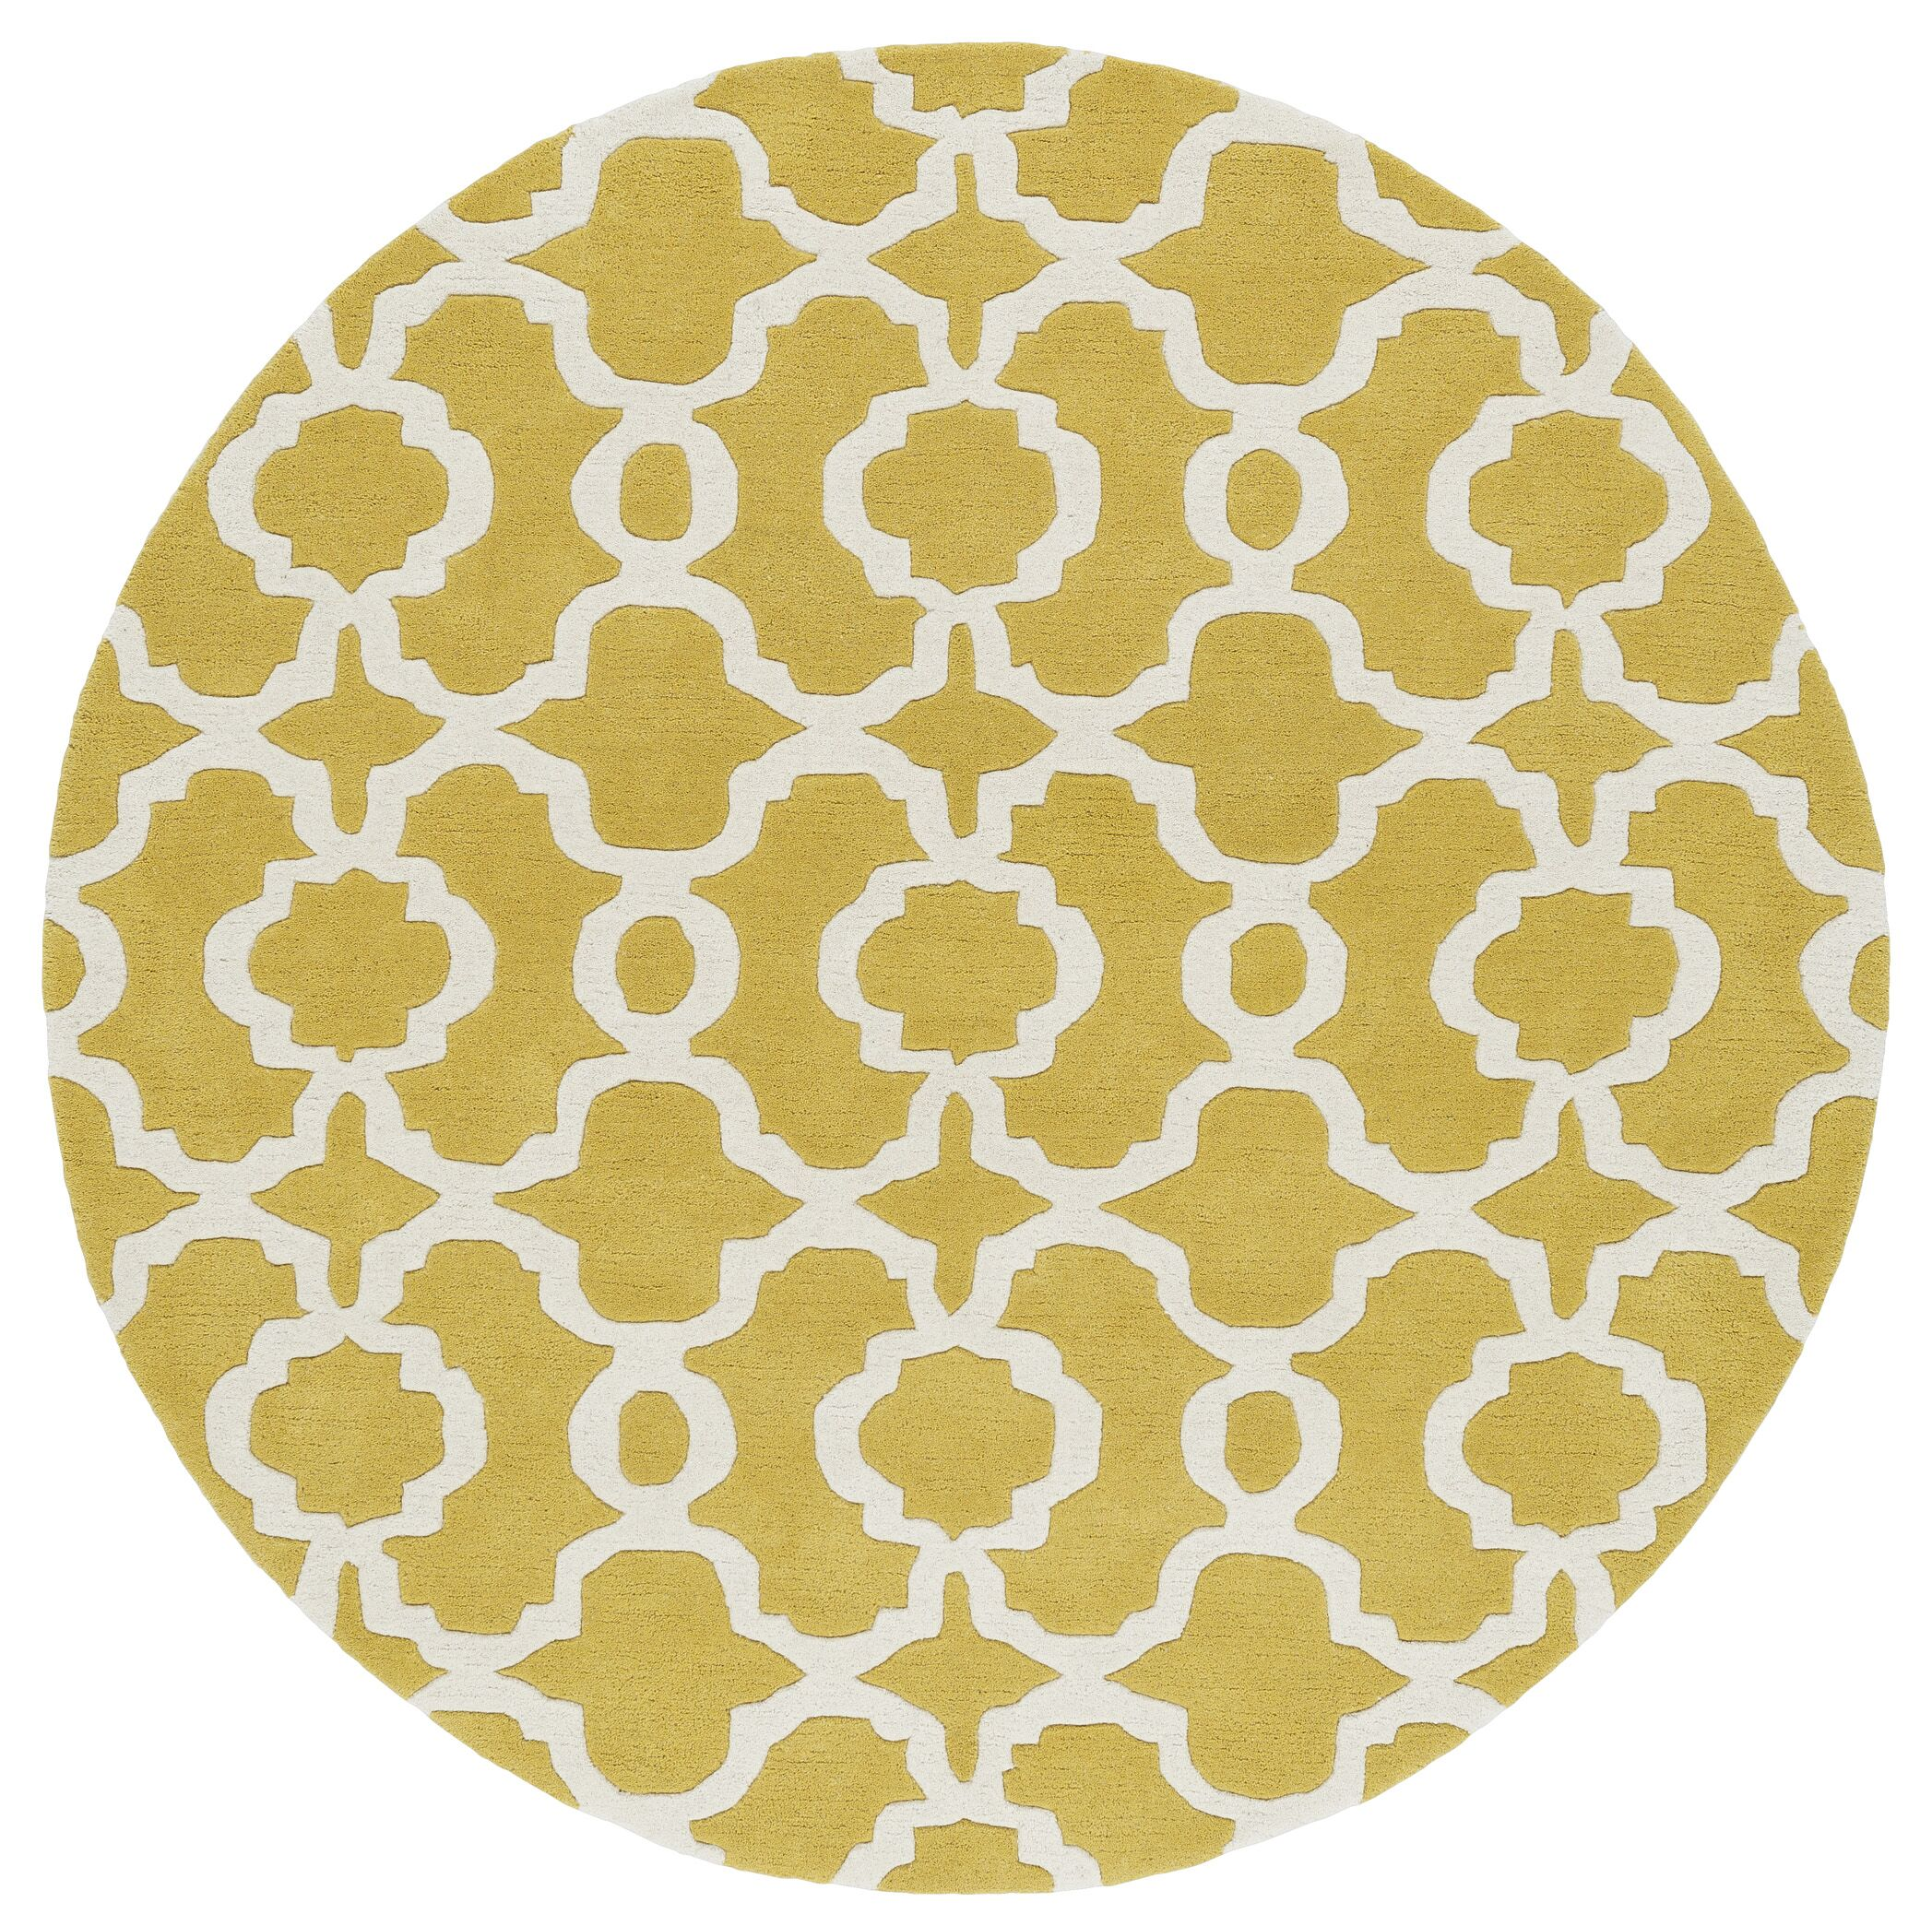 Molly Hand-Tufted Yellow / Ivory Area Rug Rug Size: Round 5'9